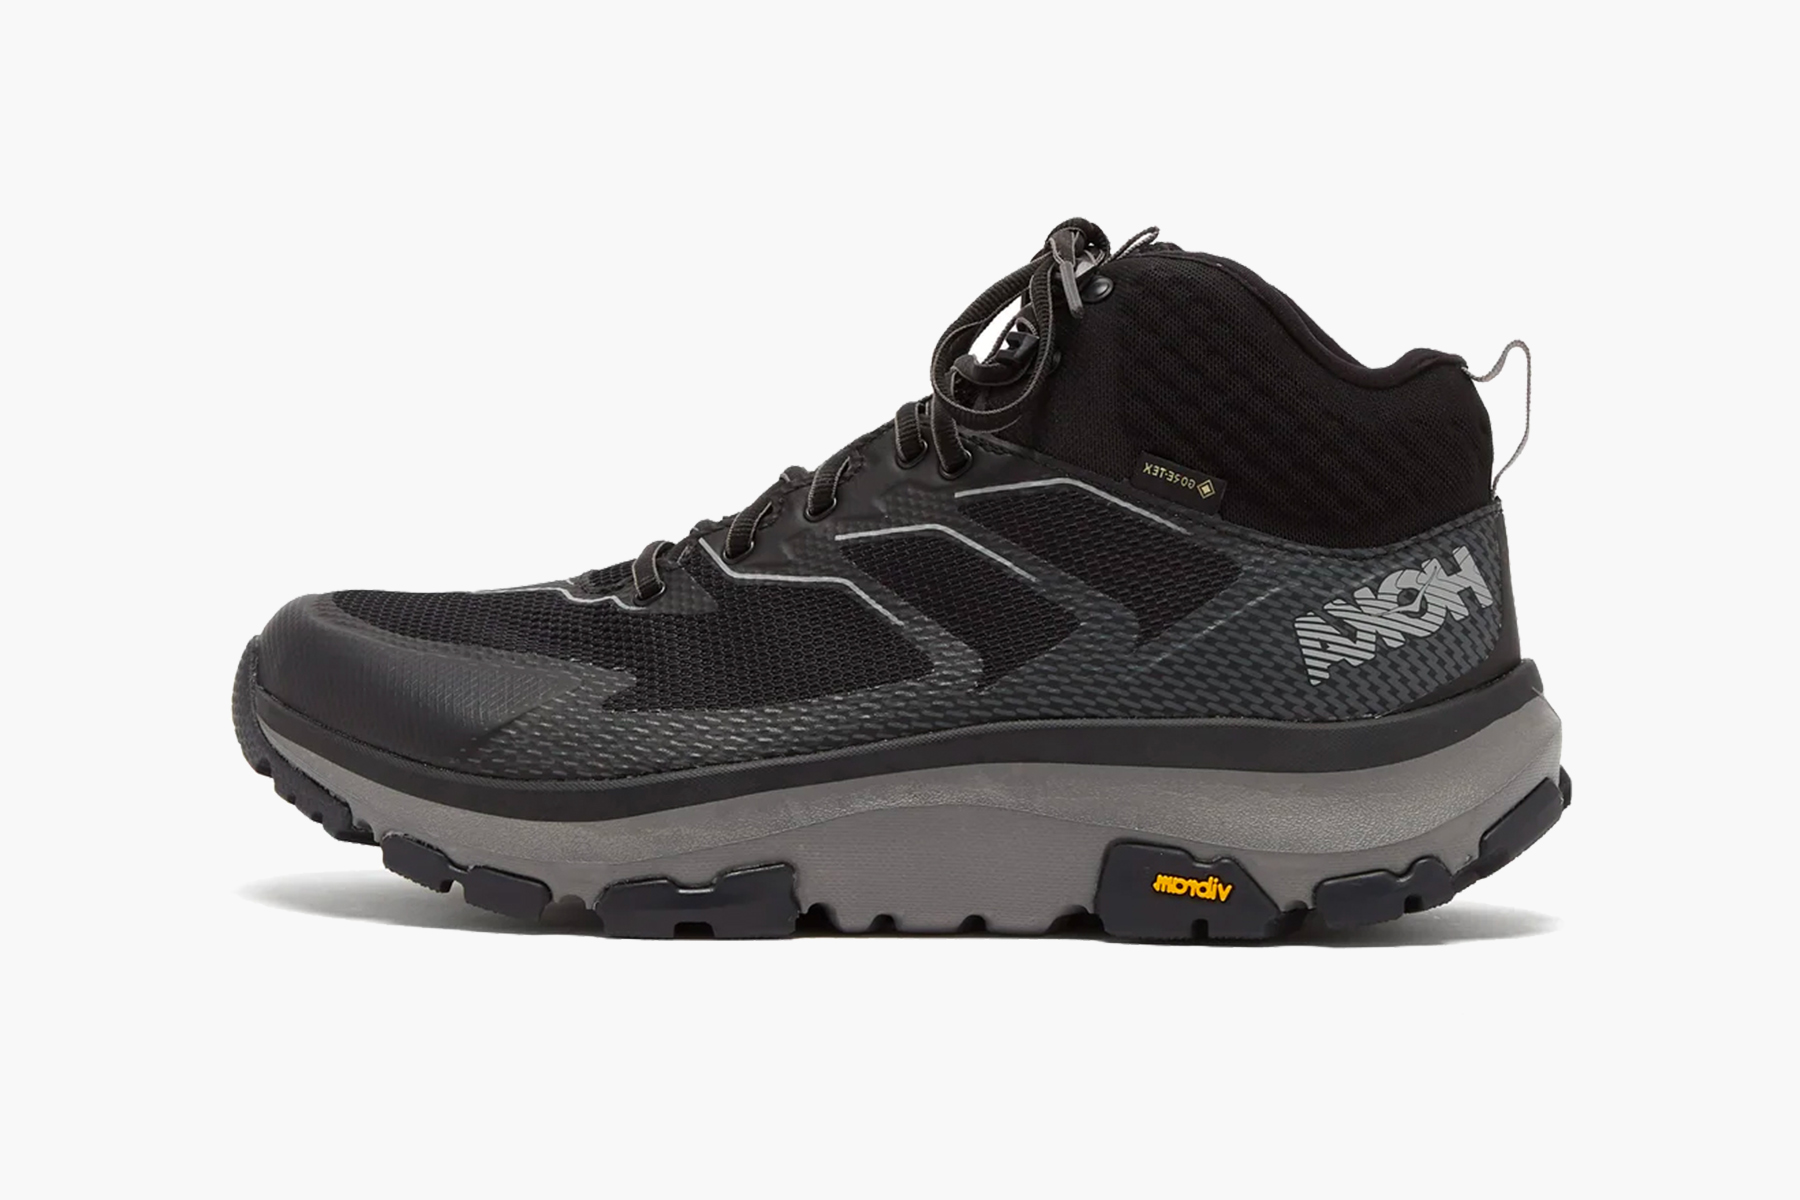 Hoka One One Toa Sky Technical Hiking Boots